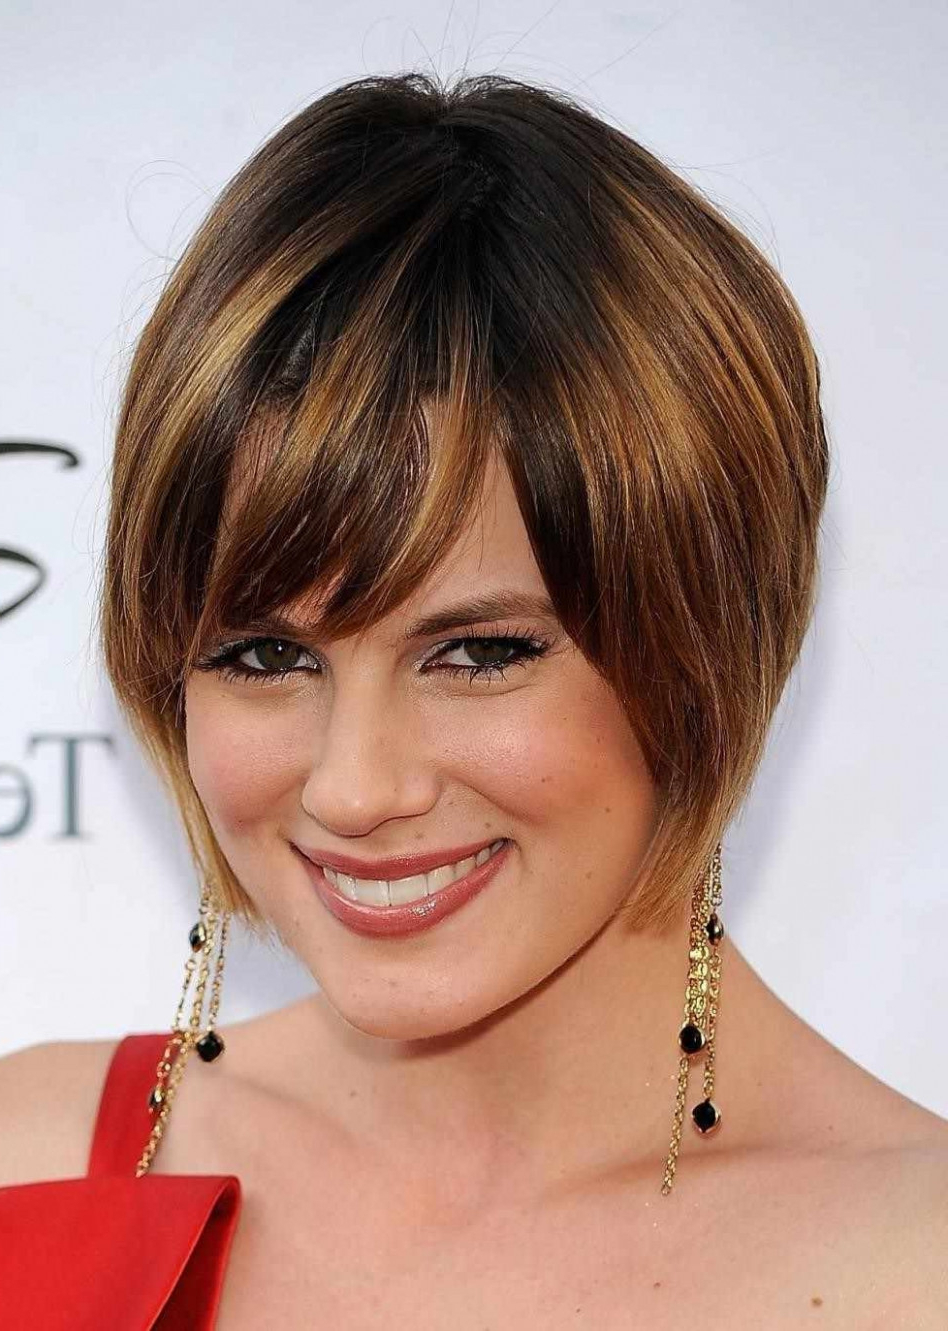 5 Gorgeous Short Haircuts For Round Faces – Low Maintenance In Low Maintenance Short Haircuts For Round Faces (View 7 of 25)